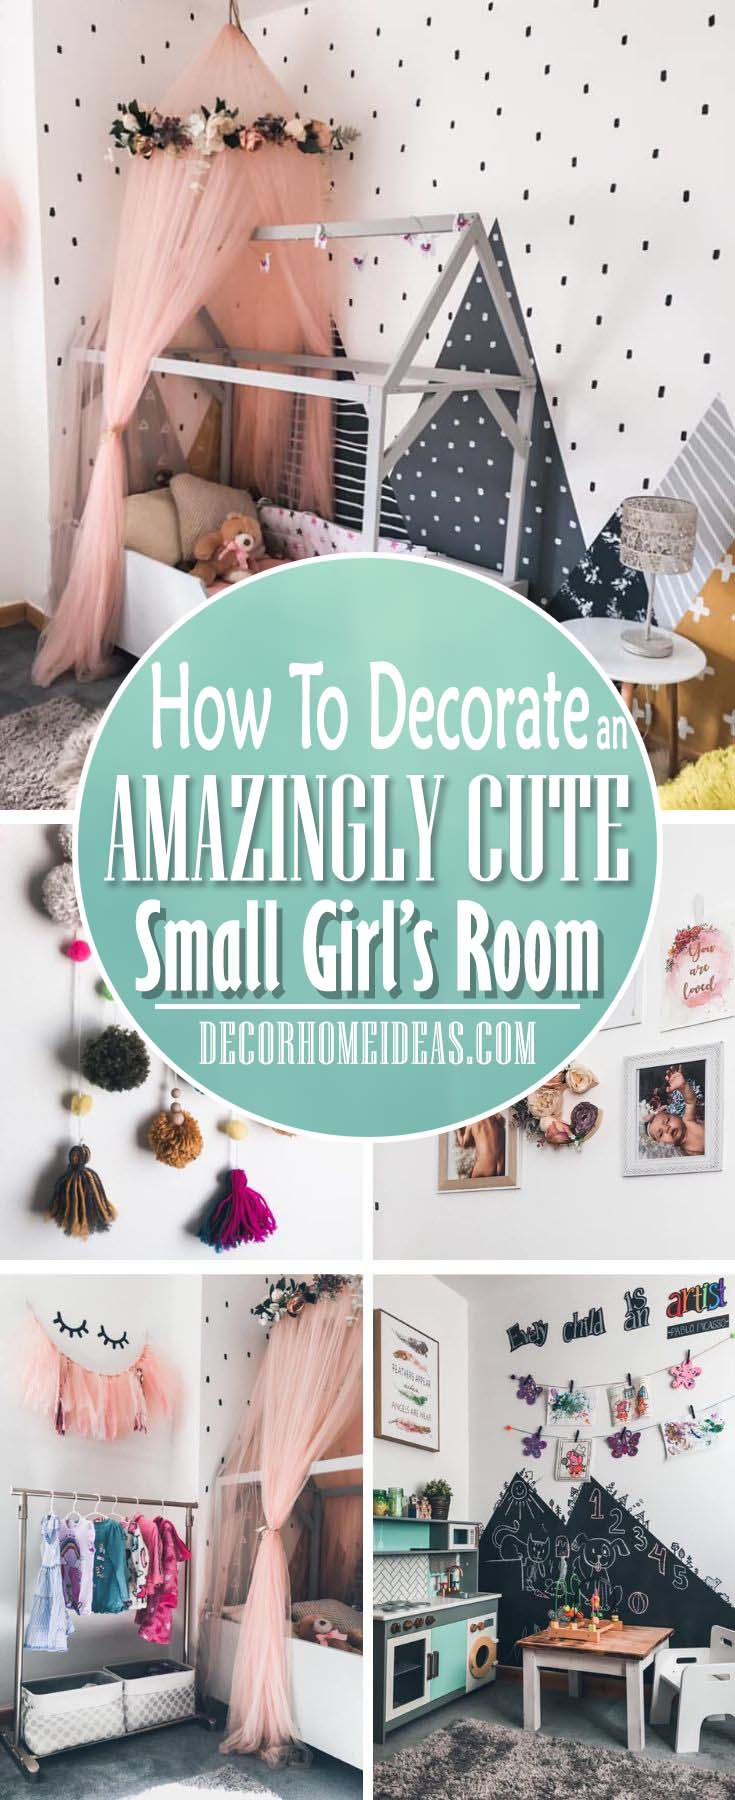 How To Decorate Girl Room with Montessori method, DIY decorations and furniture, wall murals , play areas and toy storage. #diy #kidsroom #montessori #decor #decorhomeideas